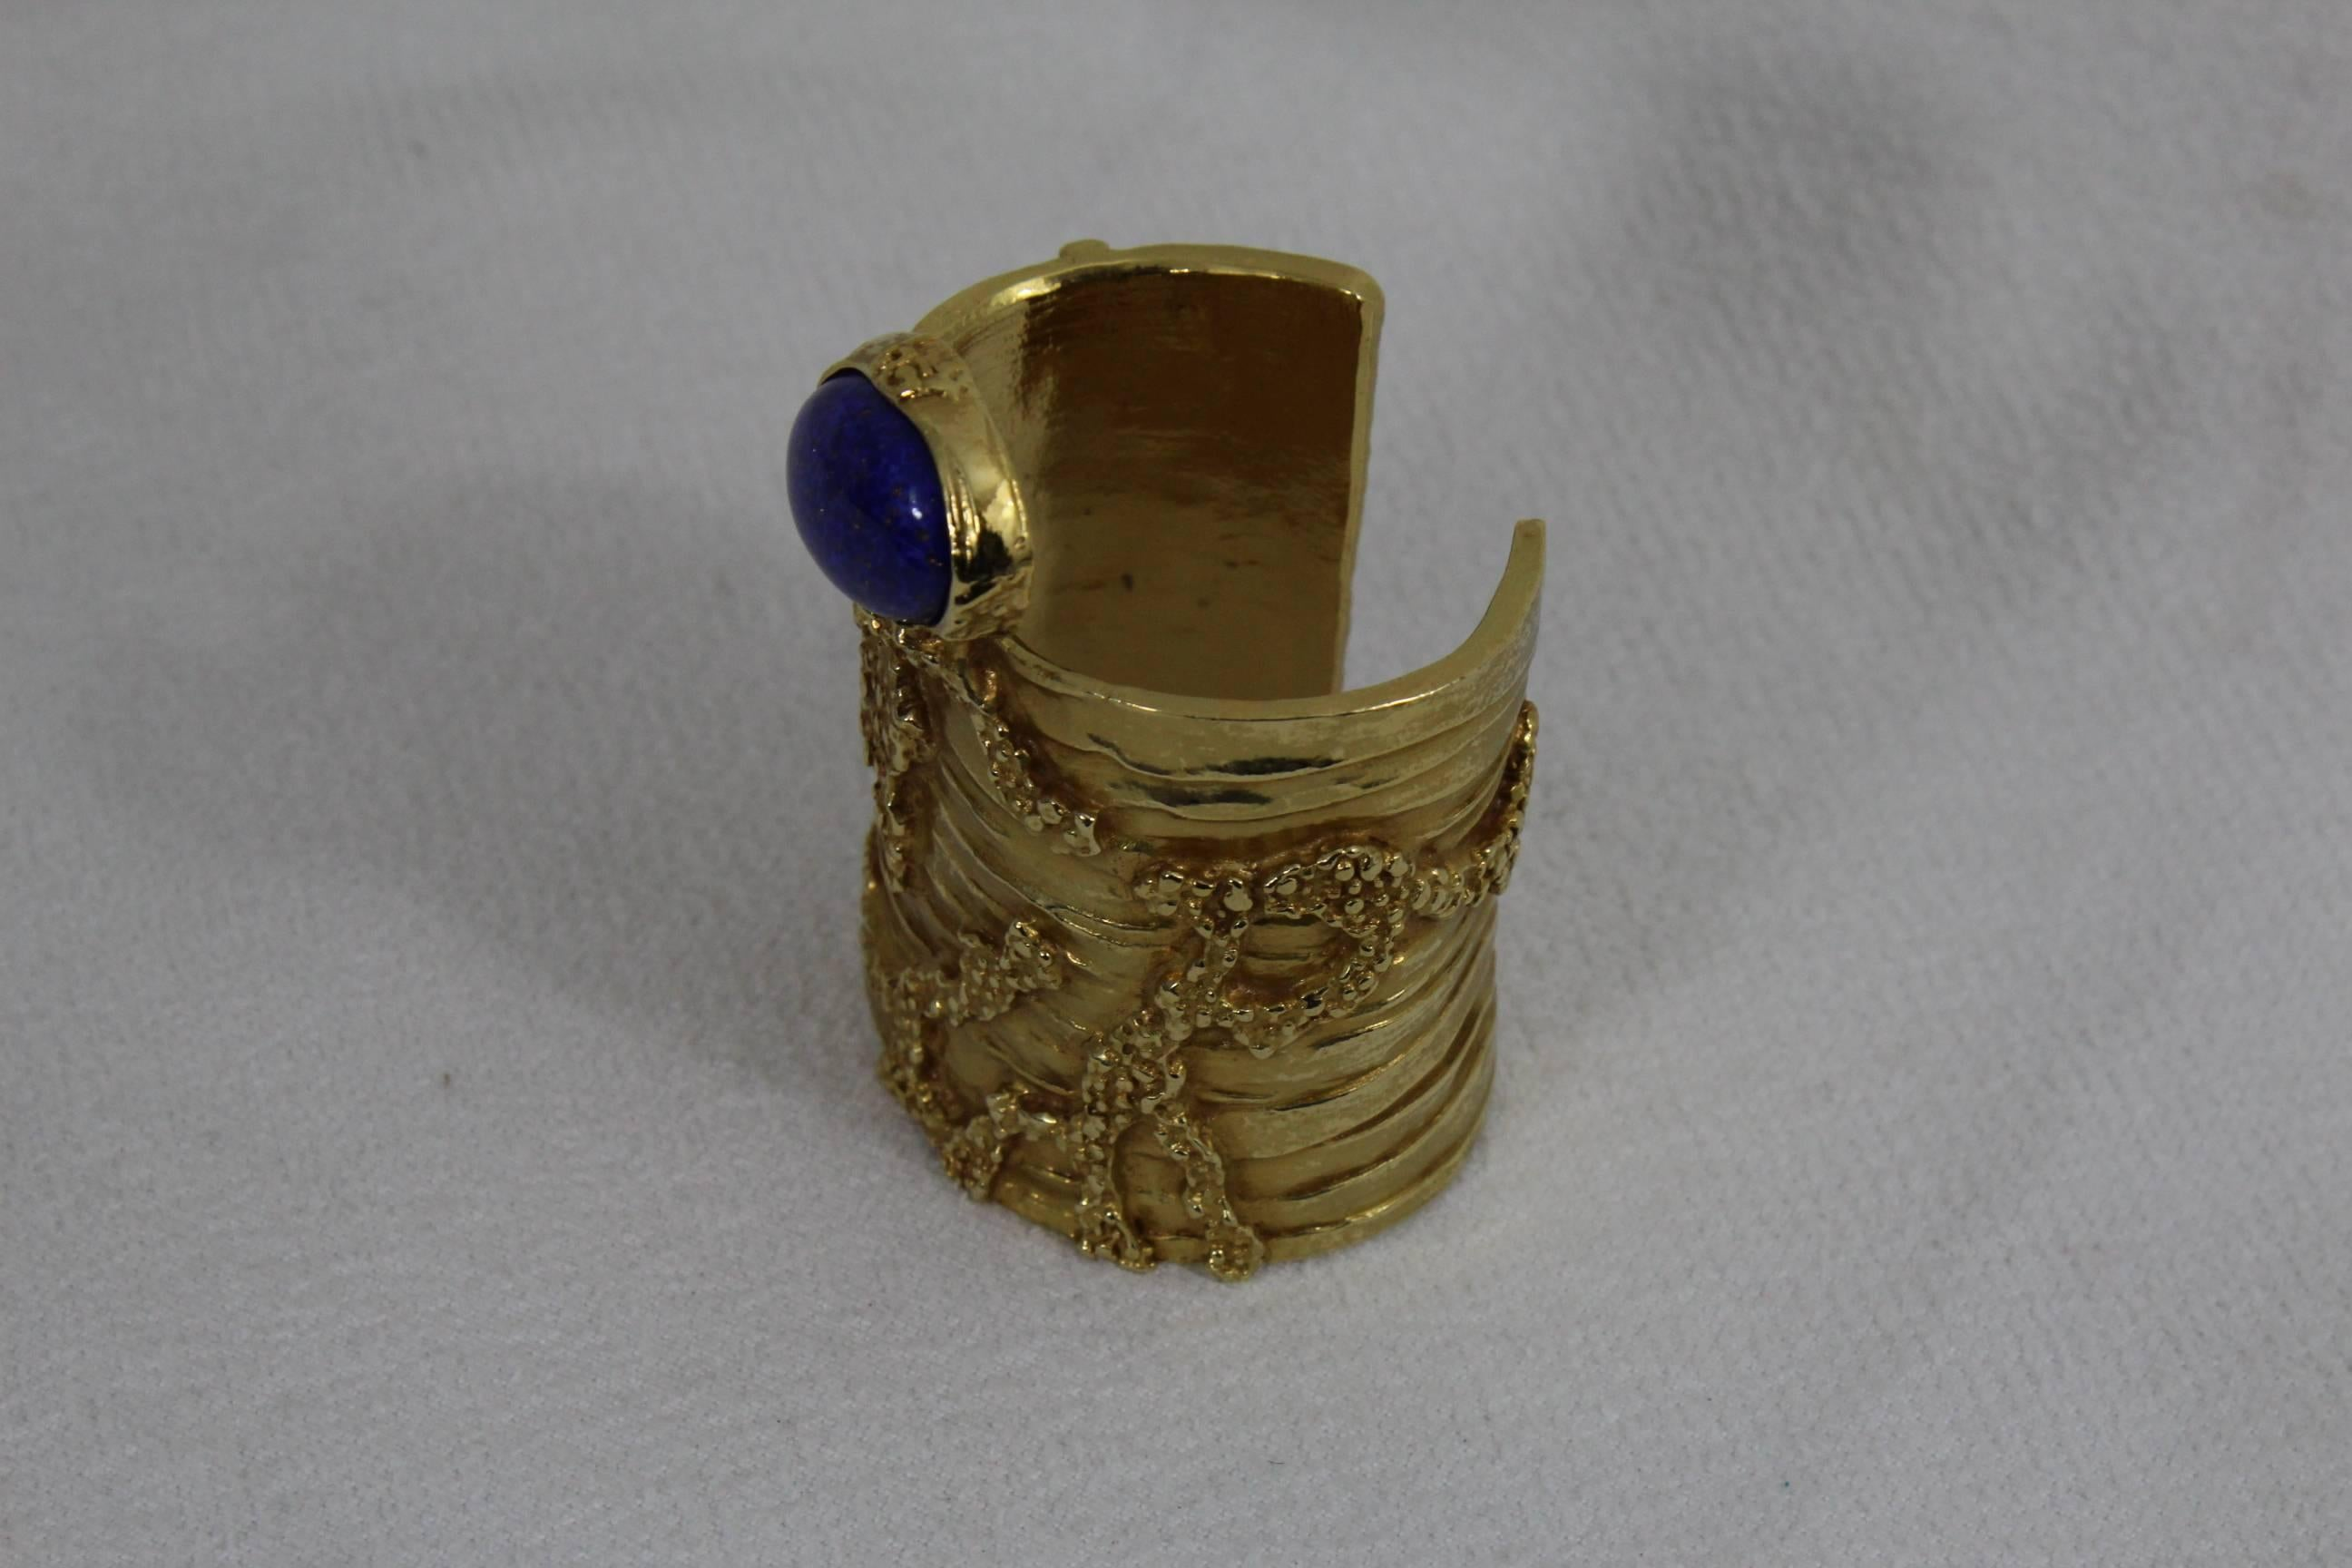 658d6804f74 Yves saint Laurent Gold Artsy Bangle with Blue Stone For Sale at 1stdibs